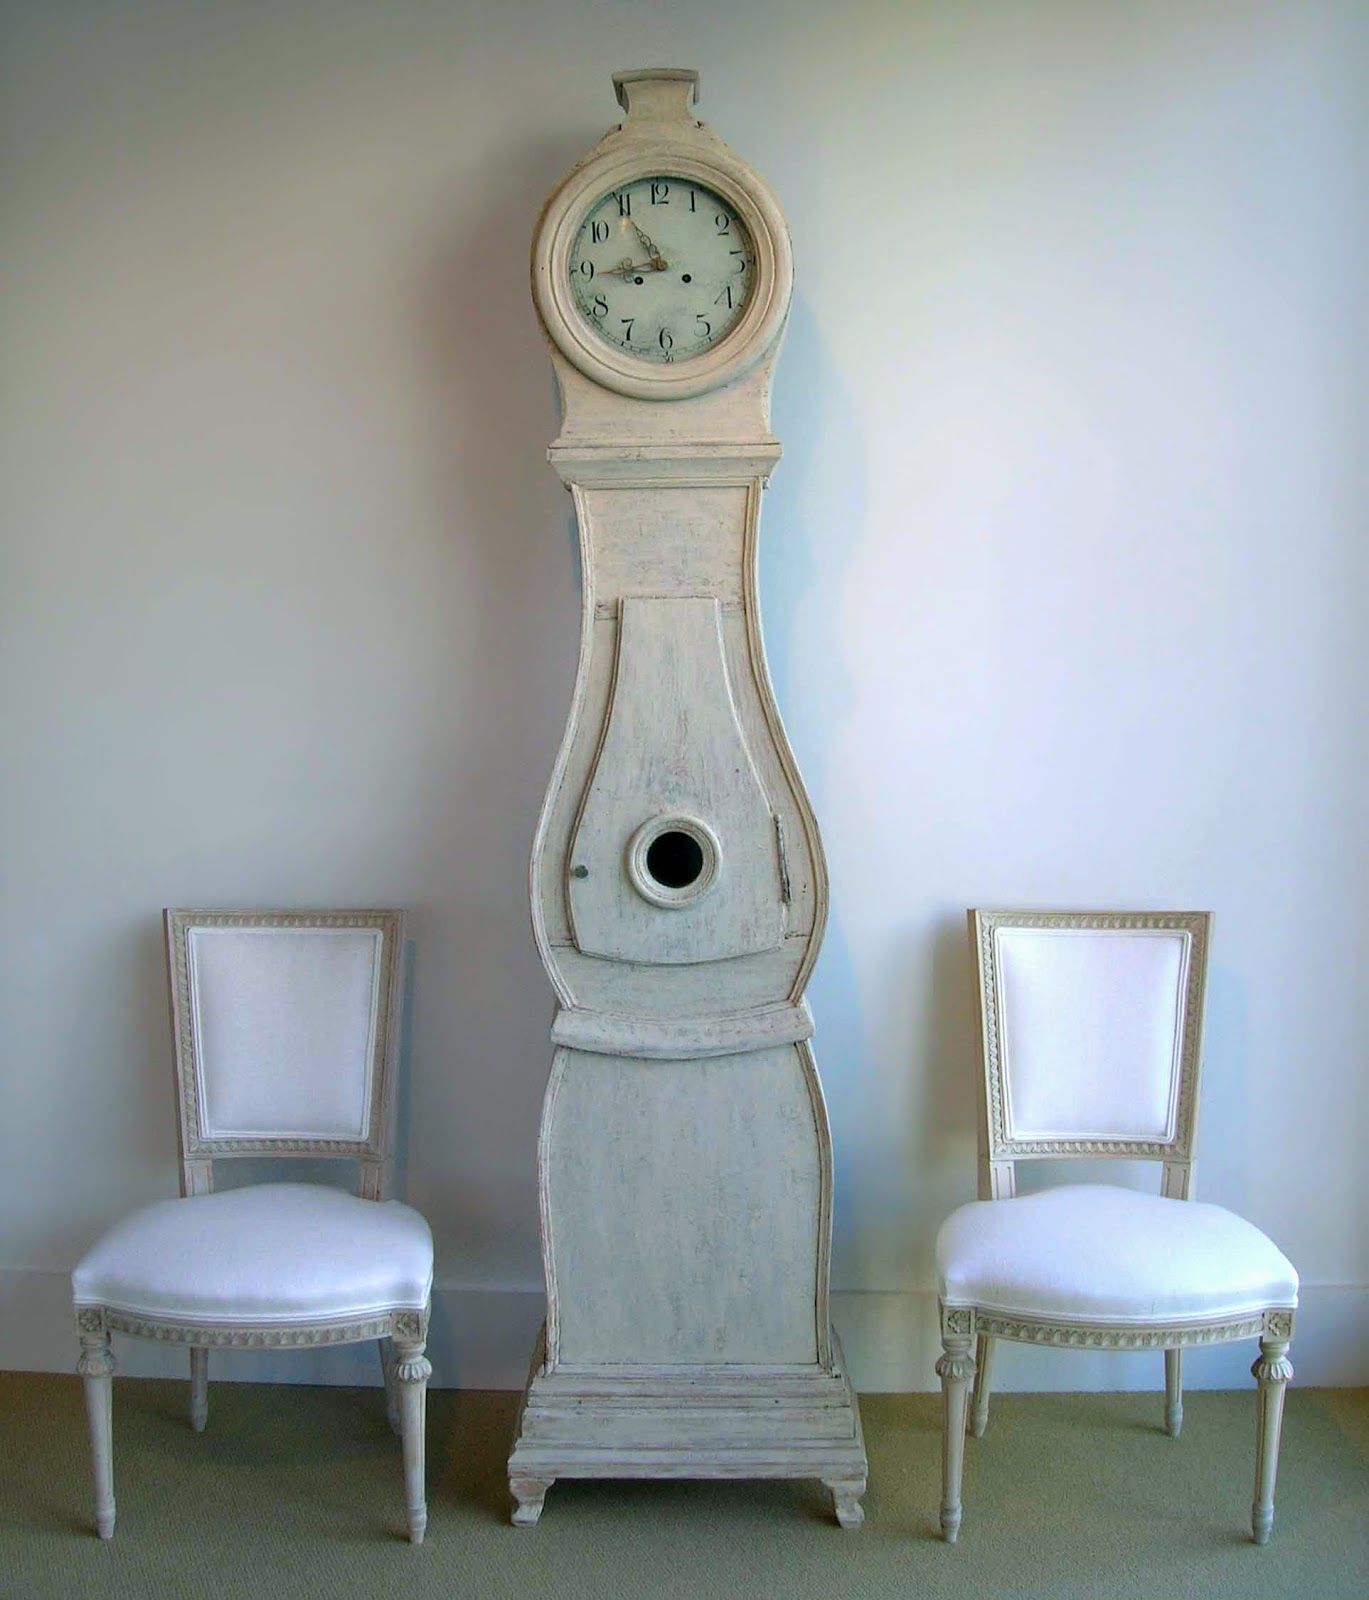 Interior Garden Design Timeless Swedish: Swedish Decor, Clock, Retro Clock